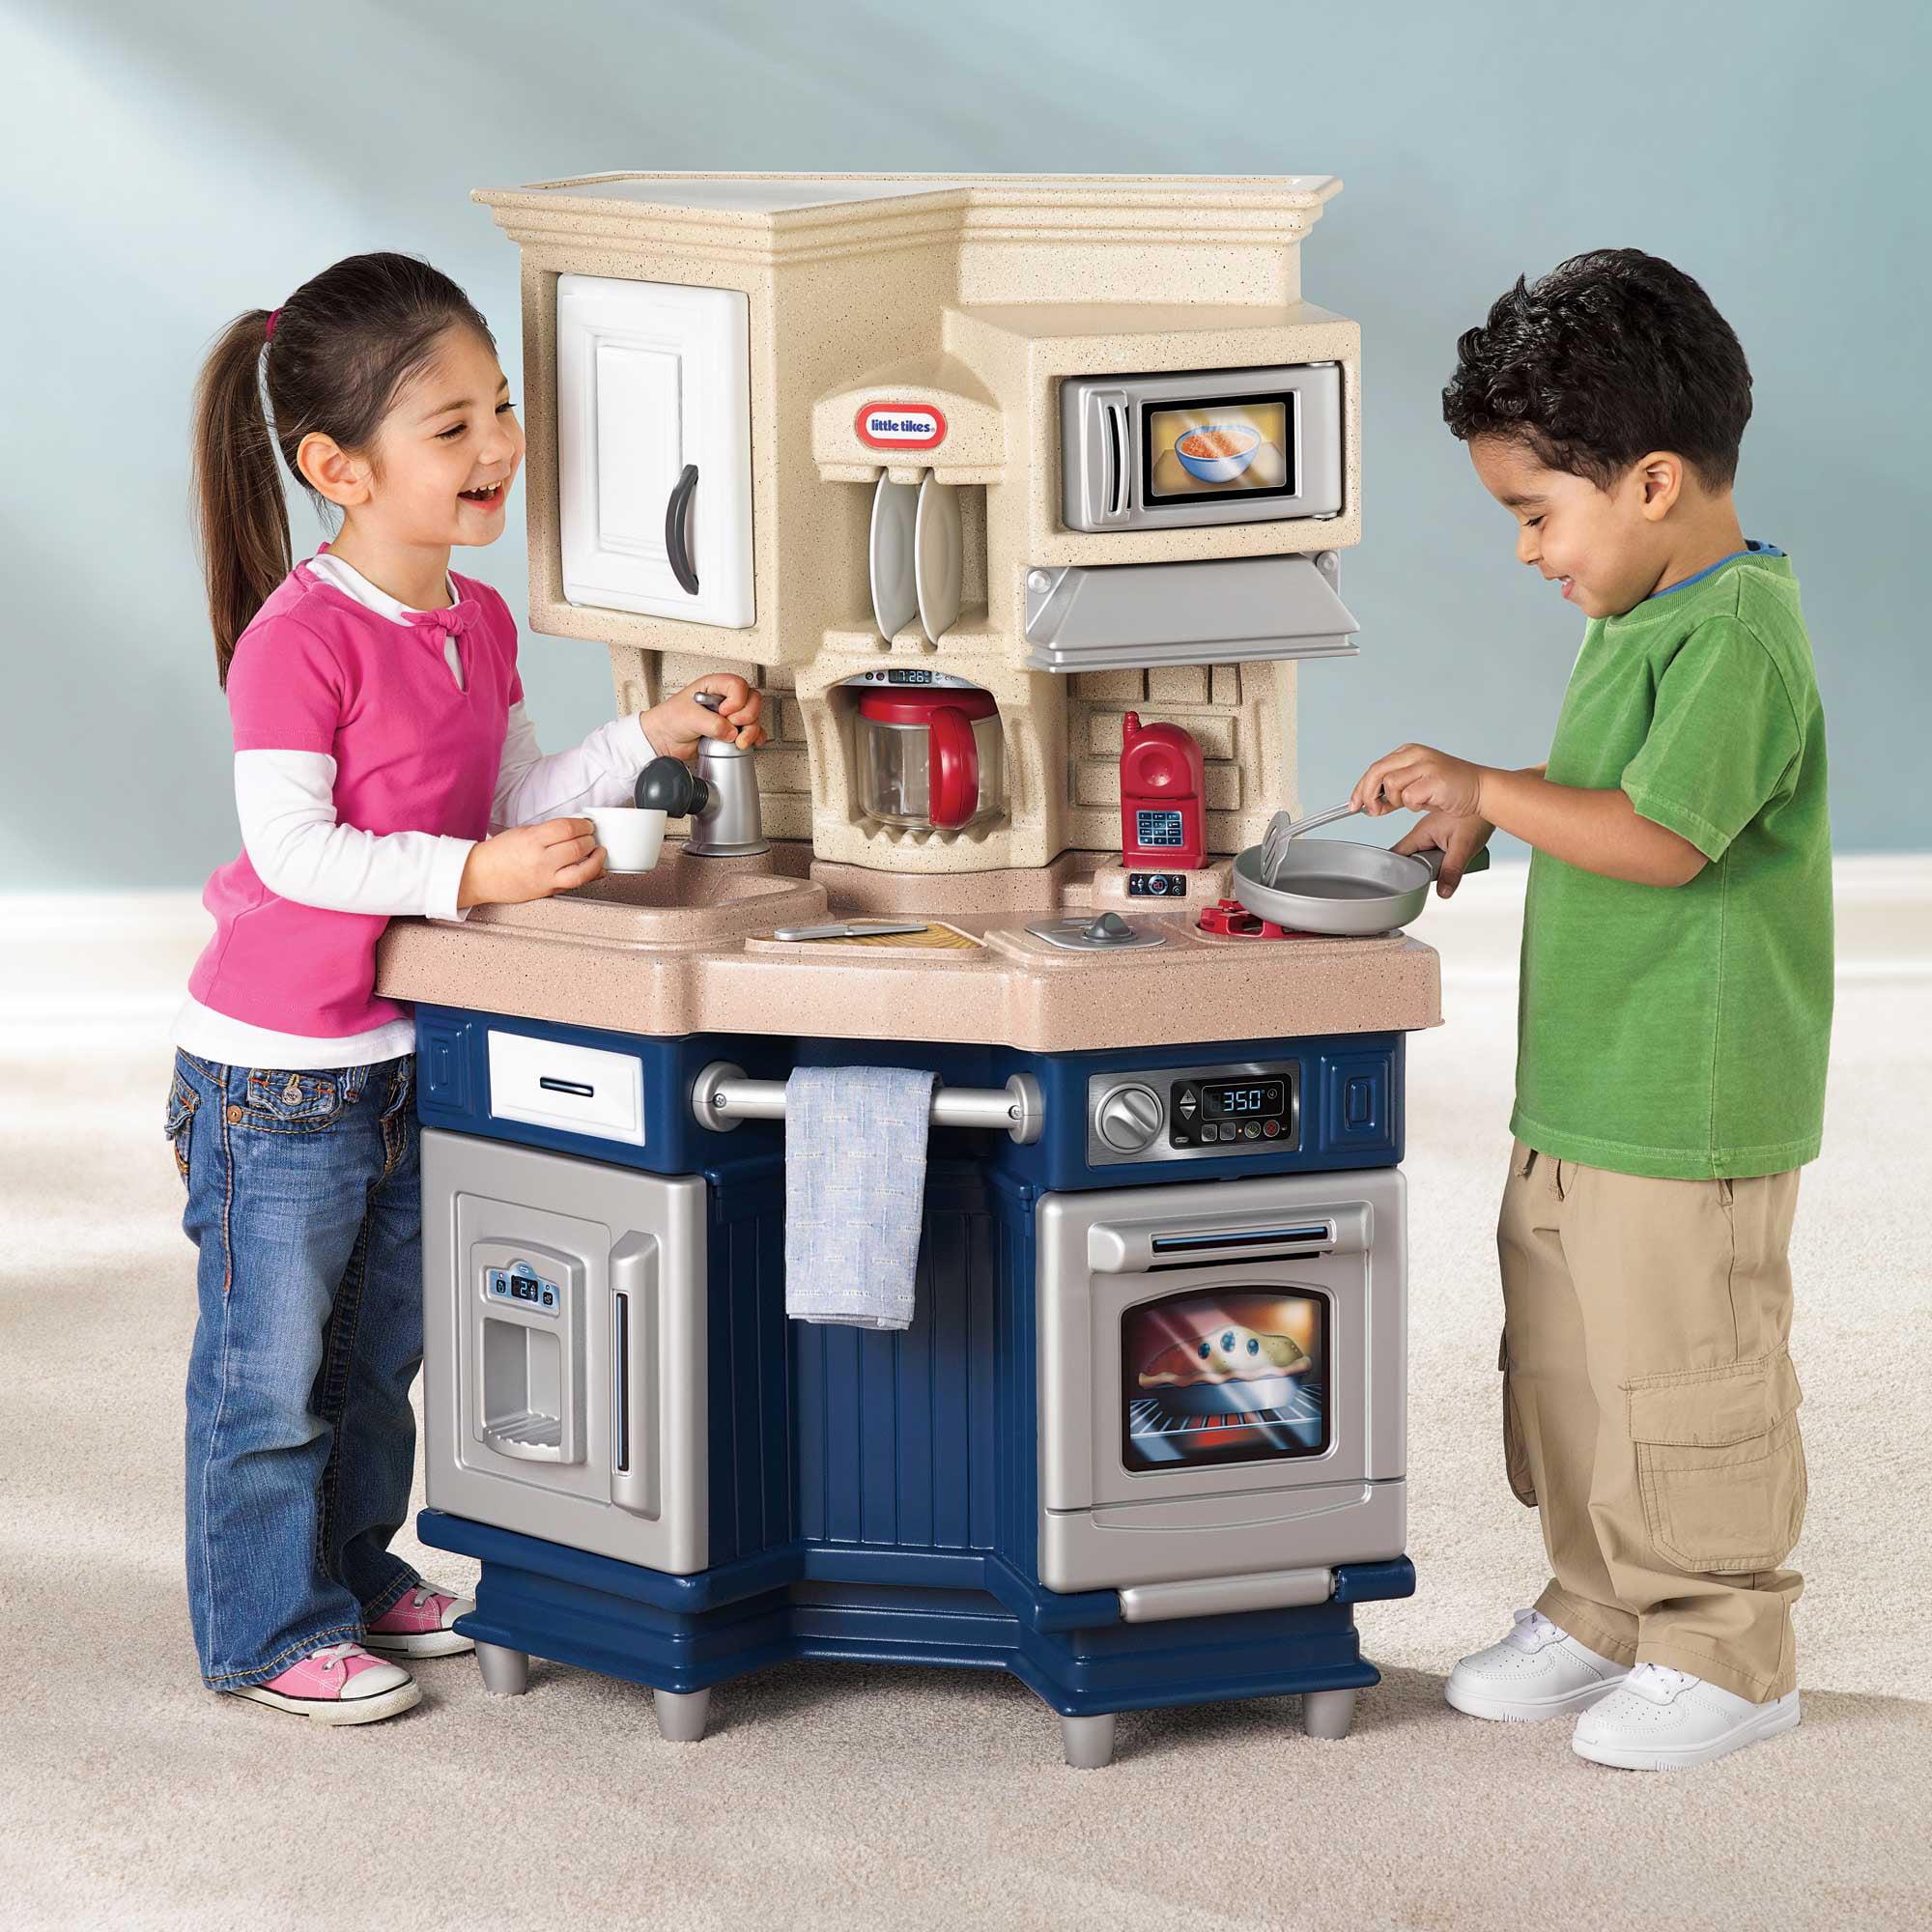 Little Tikes Super Chef Play Kitchen With 13 Piece Accessory Play Set Walmart Com Walmart Com